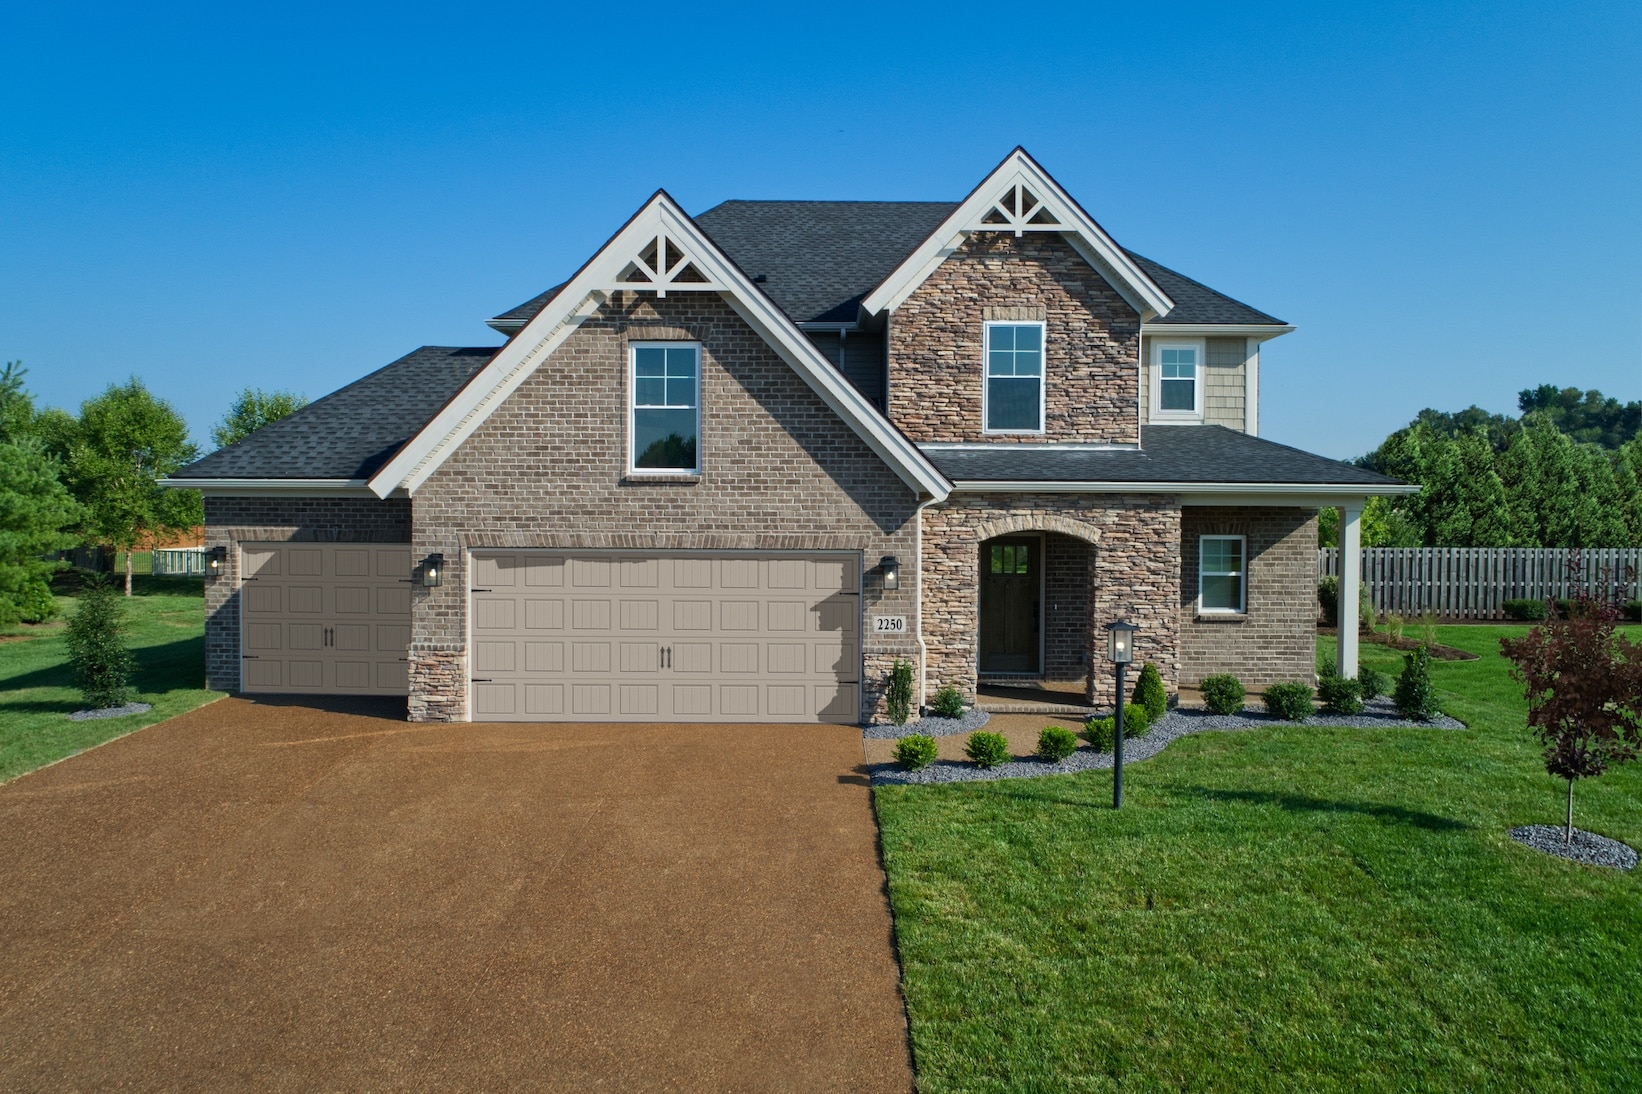 Fall Tour of Homes - The Reserve at Deer Valley | National Craftsman w/ 3 Car Garage | 2250 Deer Valley Boulevard, 42376